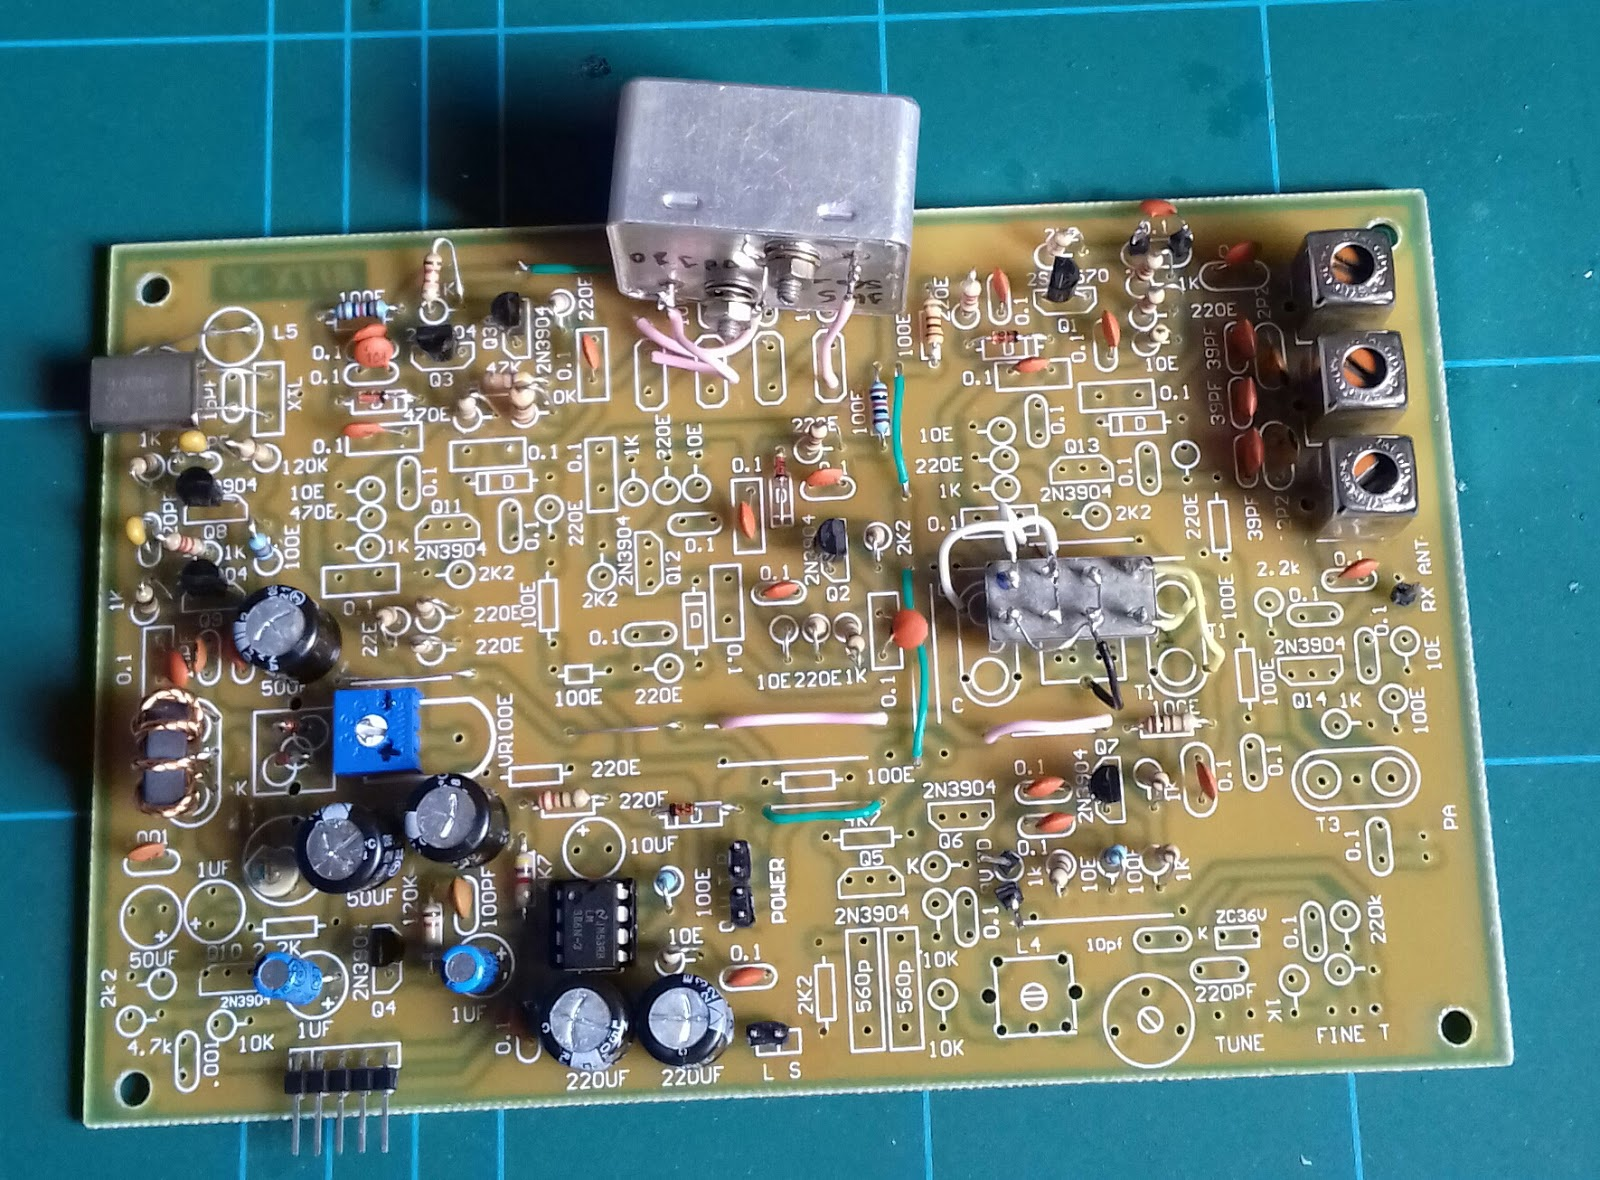 The Speaky Hf Ssb Transceiver And Other Homebrew Projects 50 Mhz Simple Fm Transmitter With 2n3904 I Found It More Convenient To Buy Board From India Instead Of Making Dead Bug Still Changed First Mixer An Sbl 1 Crystal Filter